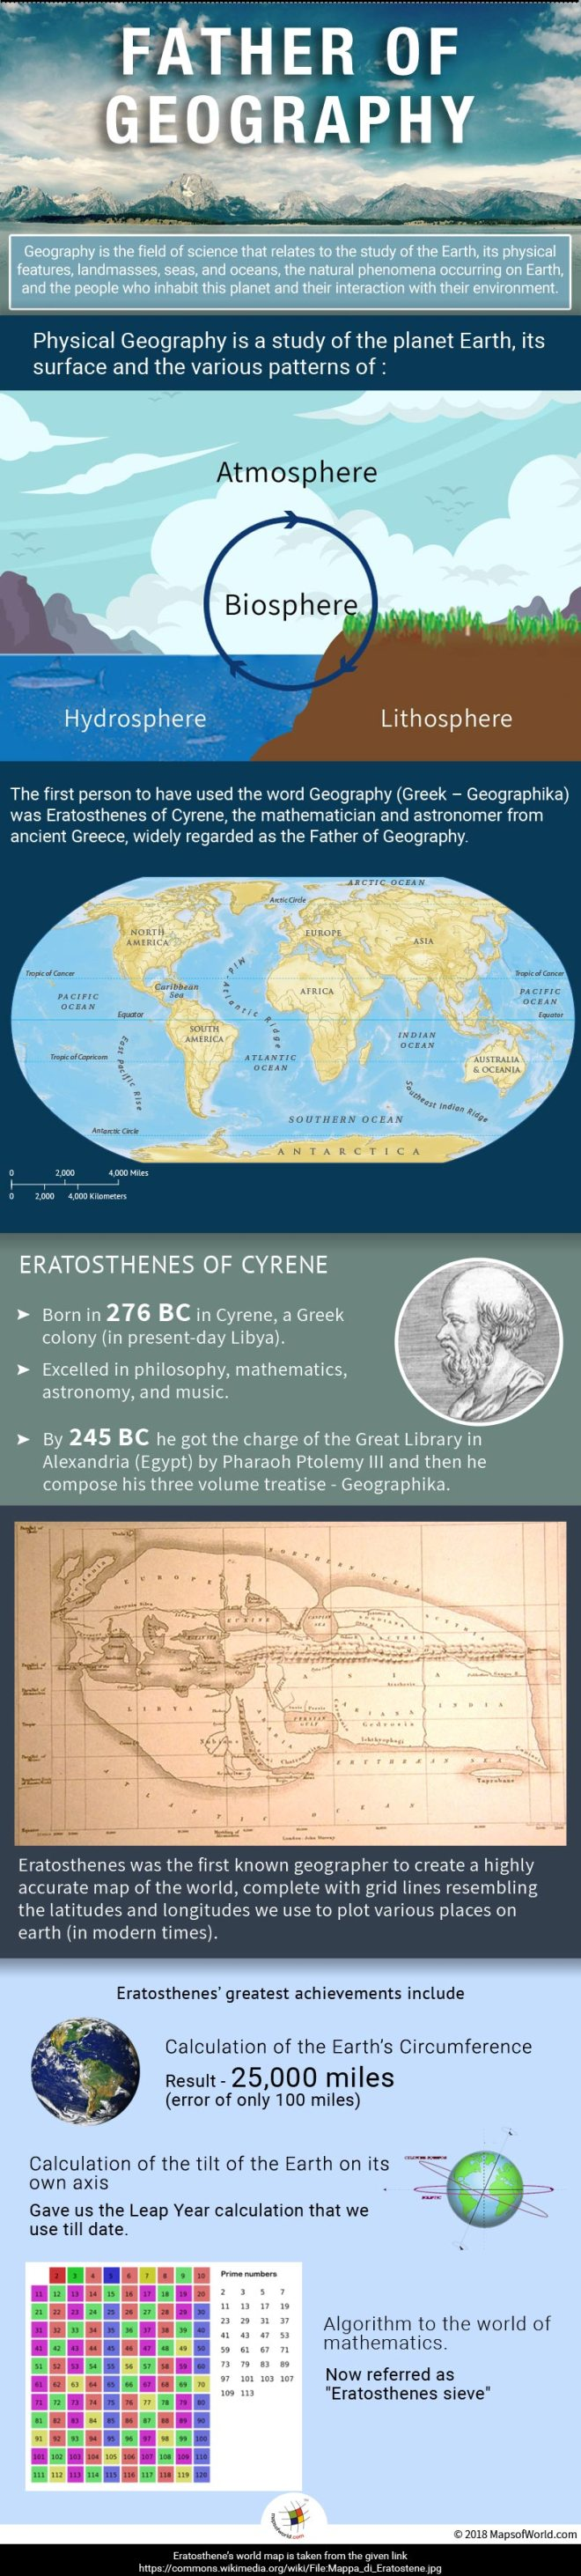 Who is the Father of Geography?